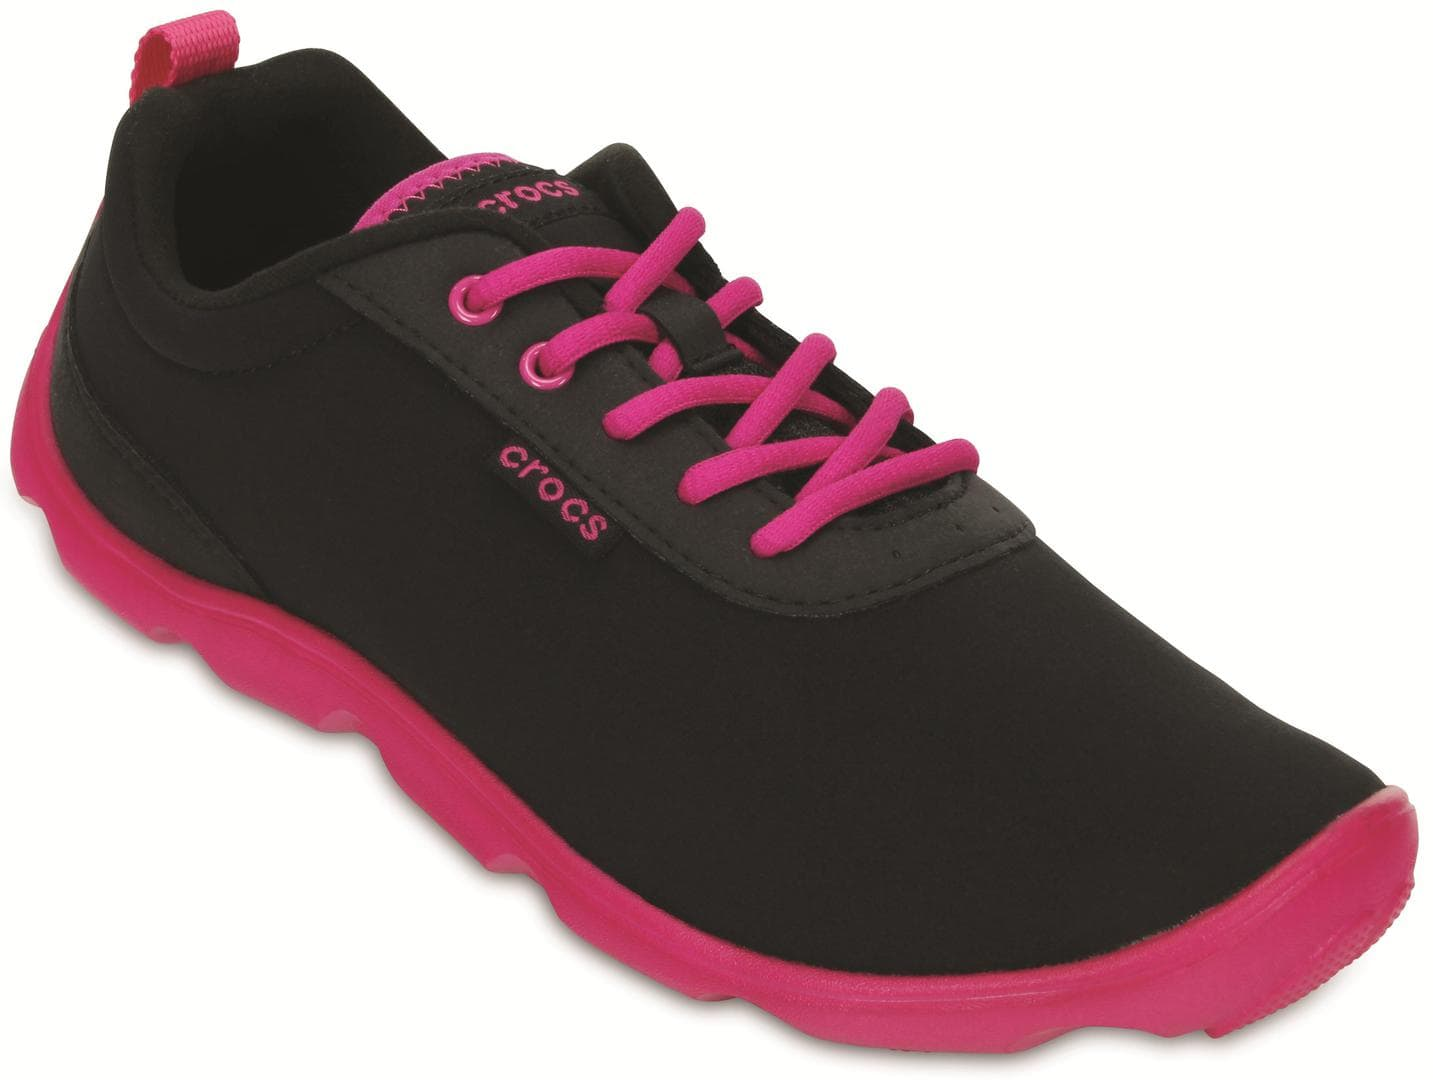 15500-0J4--ANGLE--Duet_Busy_Day_Lace-up_W--Black-Candy_Pink